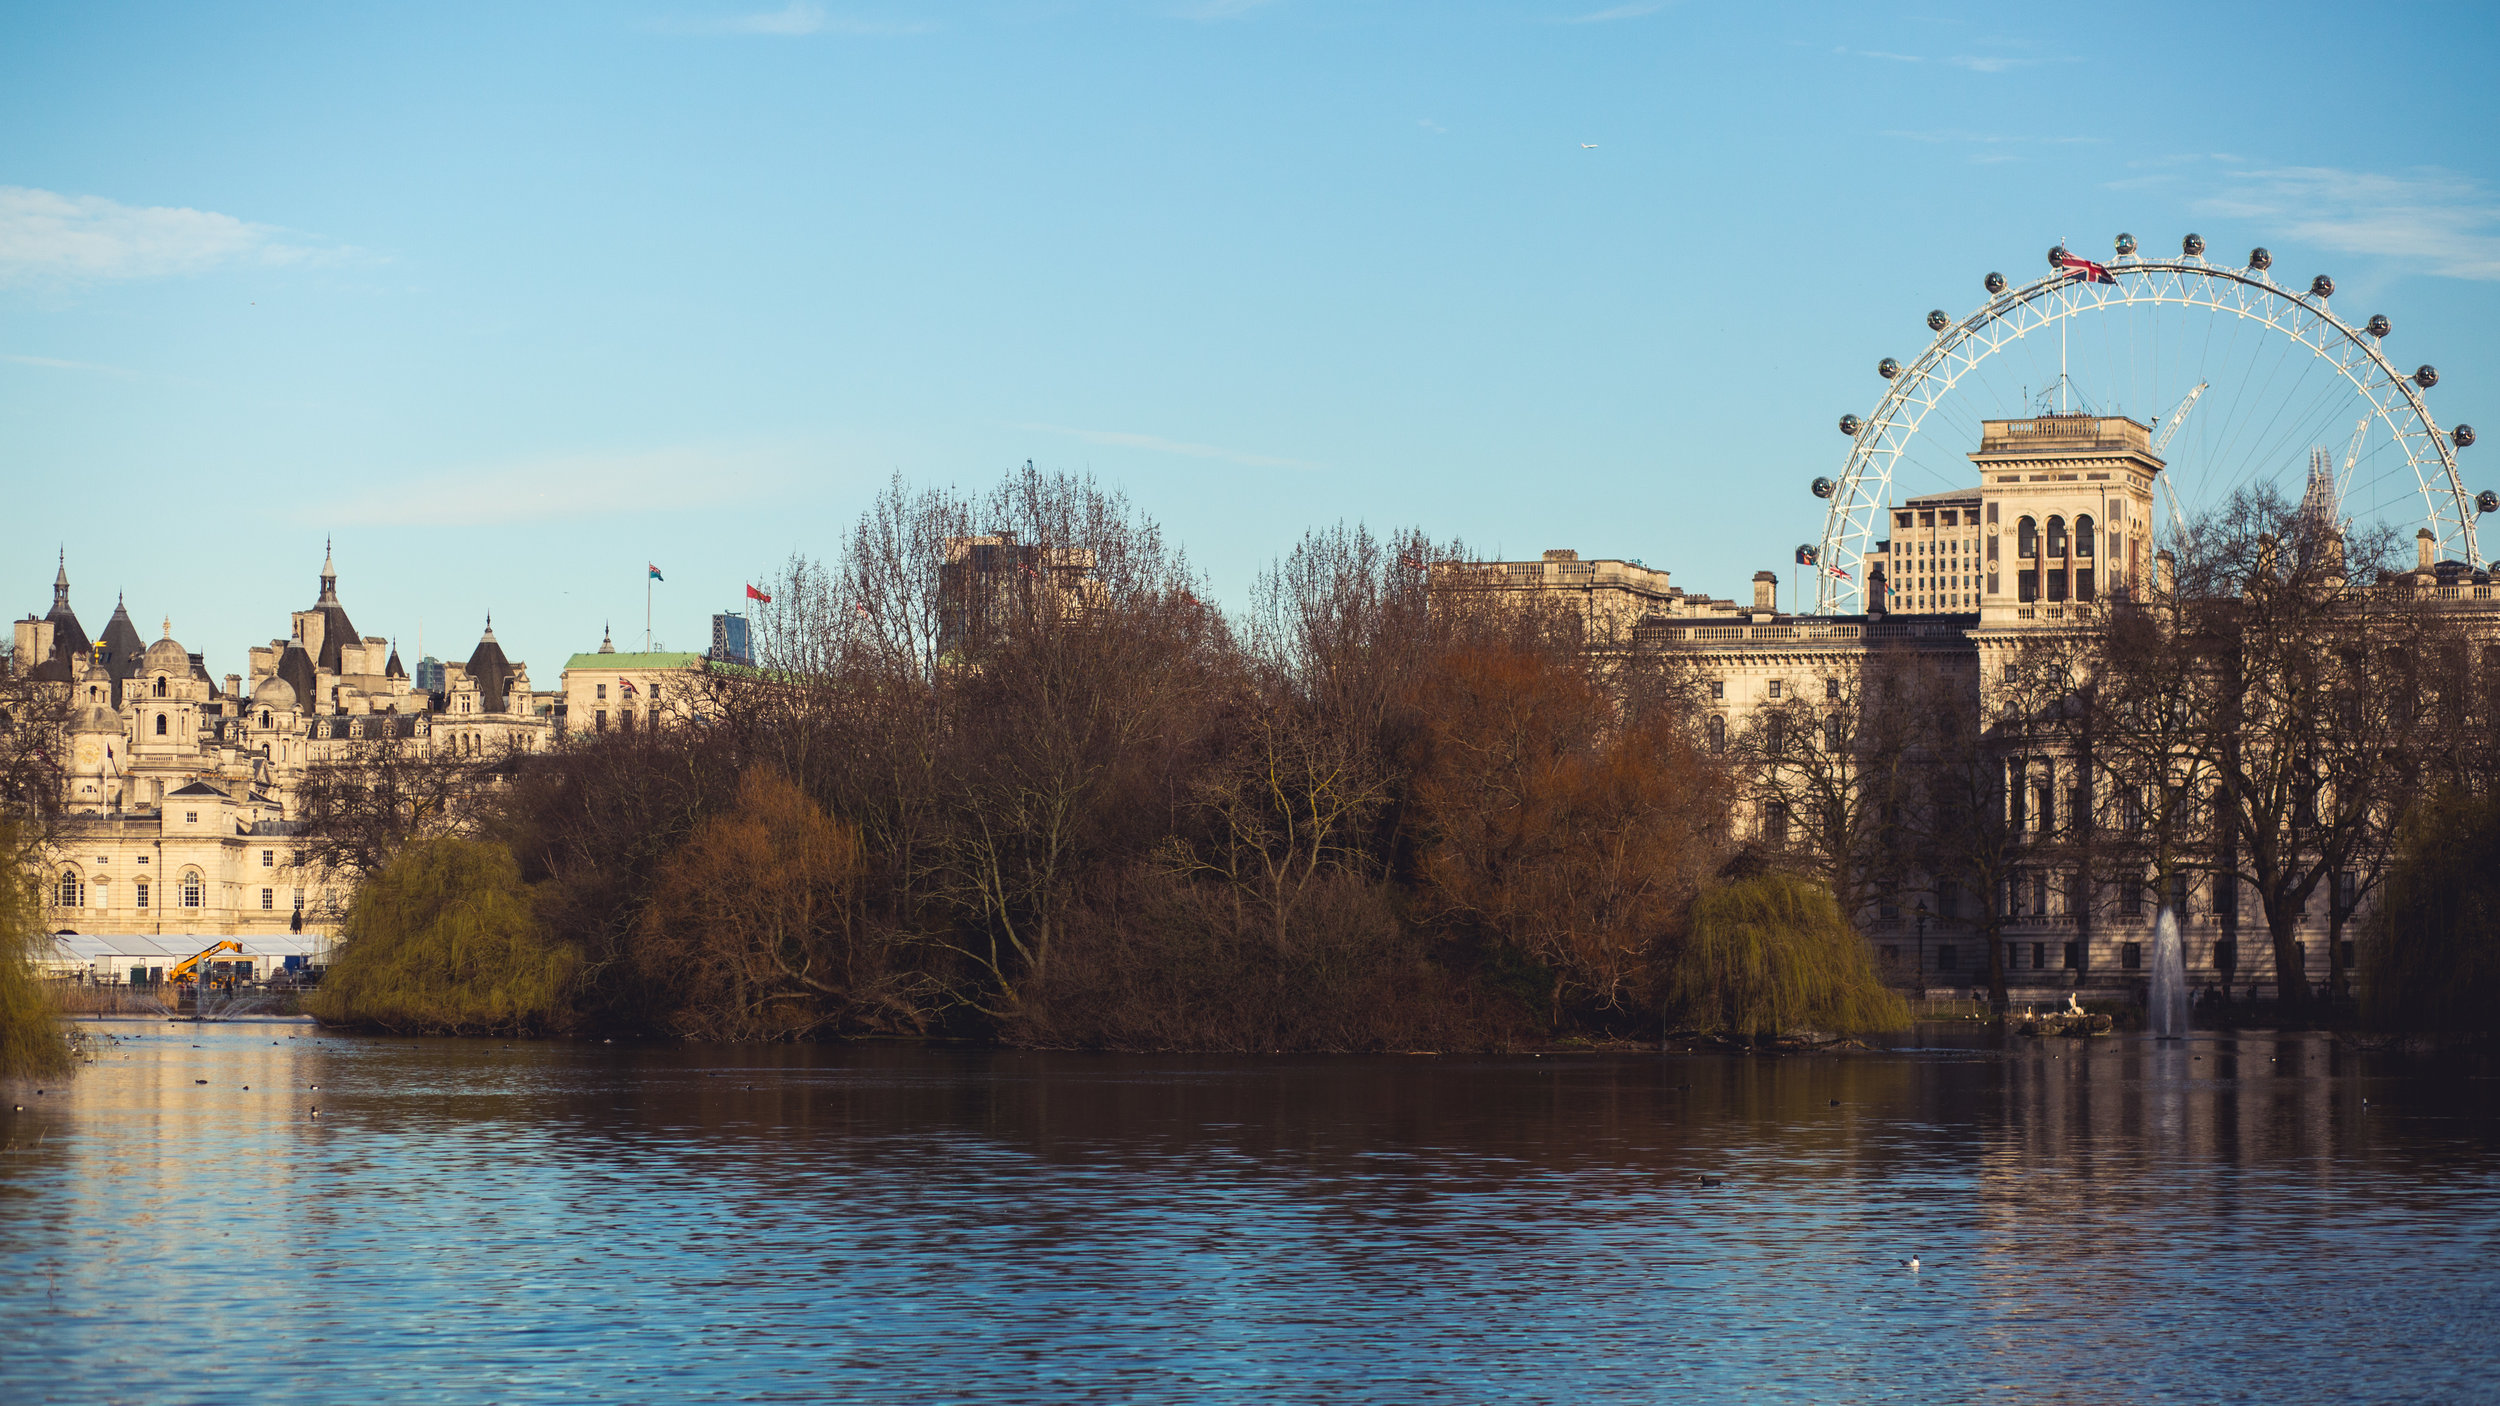 The view from St James' Park looking towards Waterloo and Southbank.